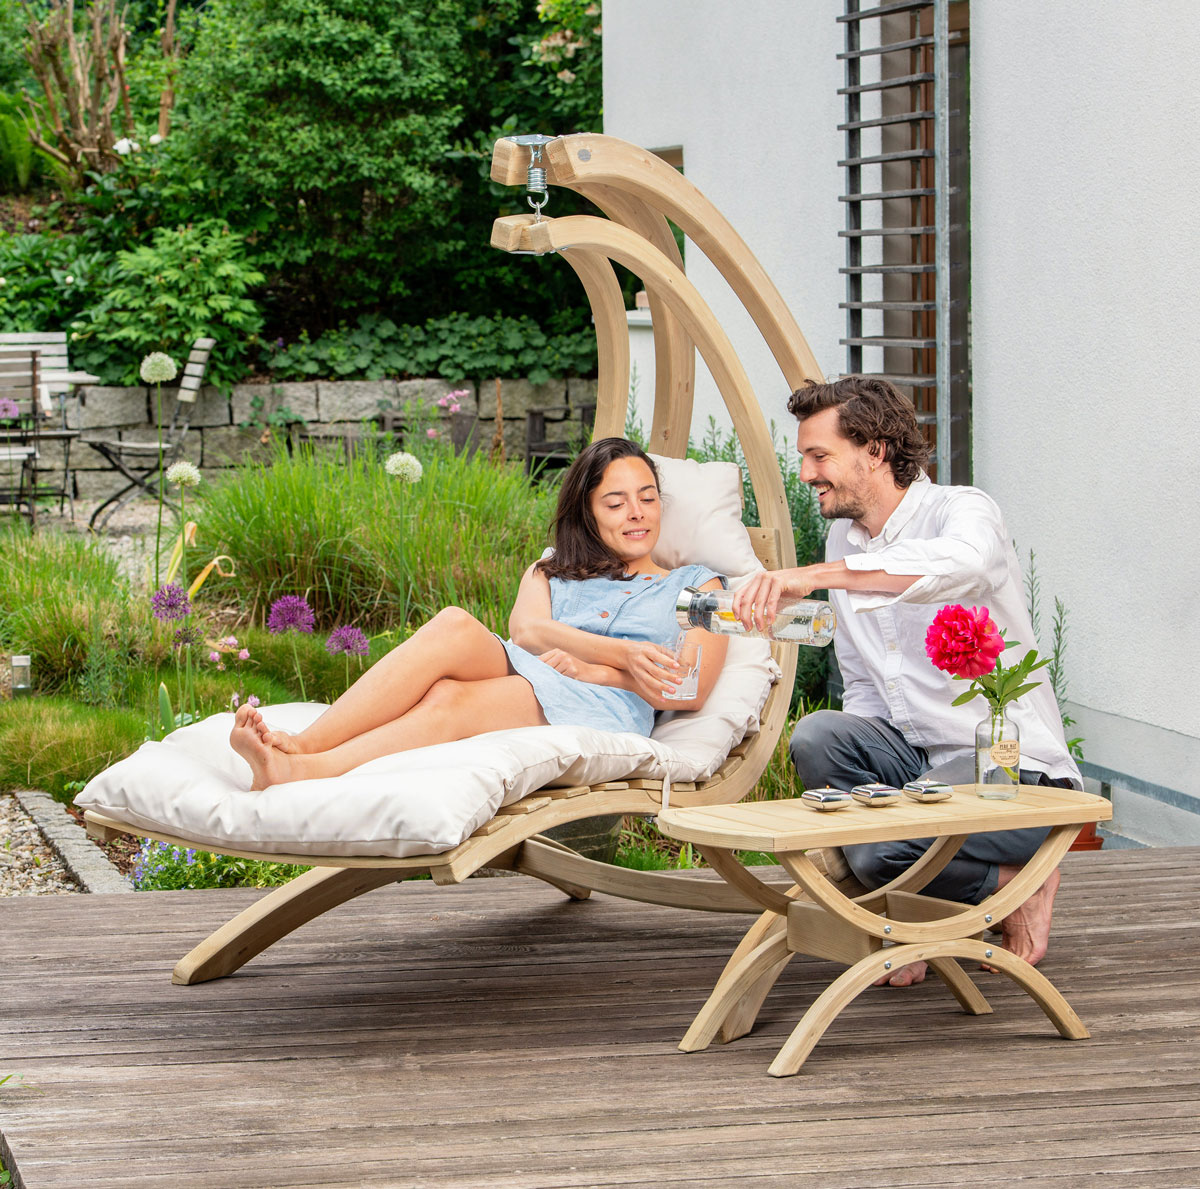 swinging-in-a-wooden-chair-lounger-with-stand-and-drinking-couple-love